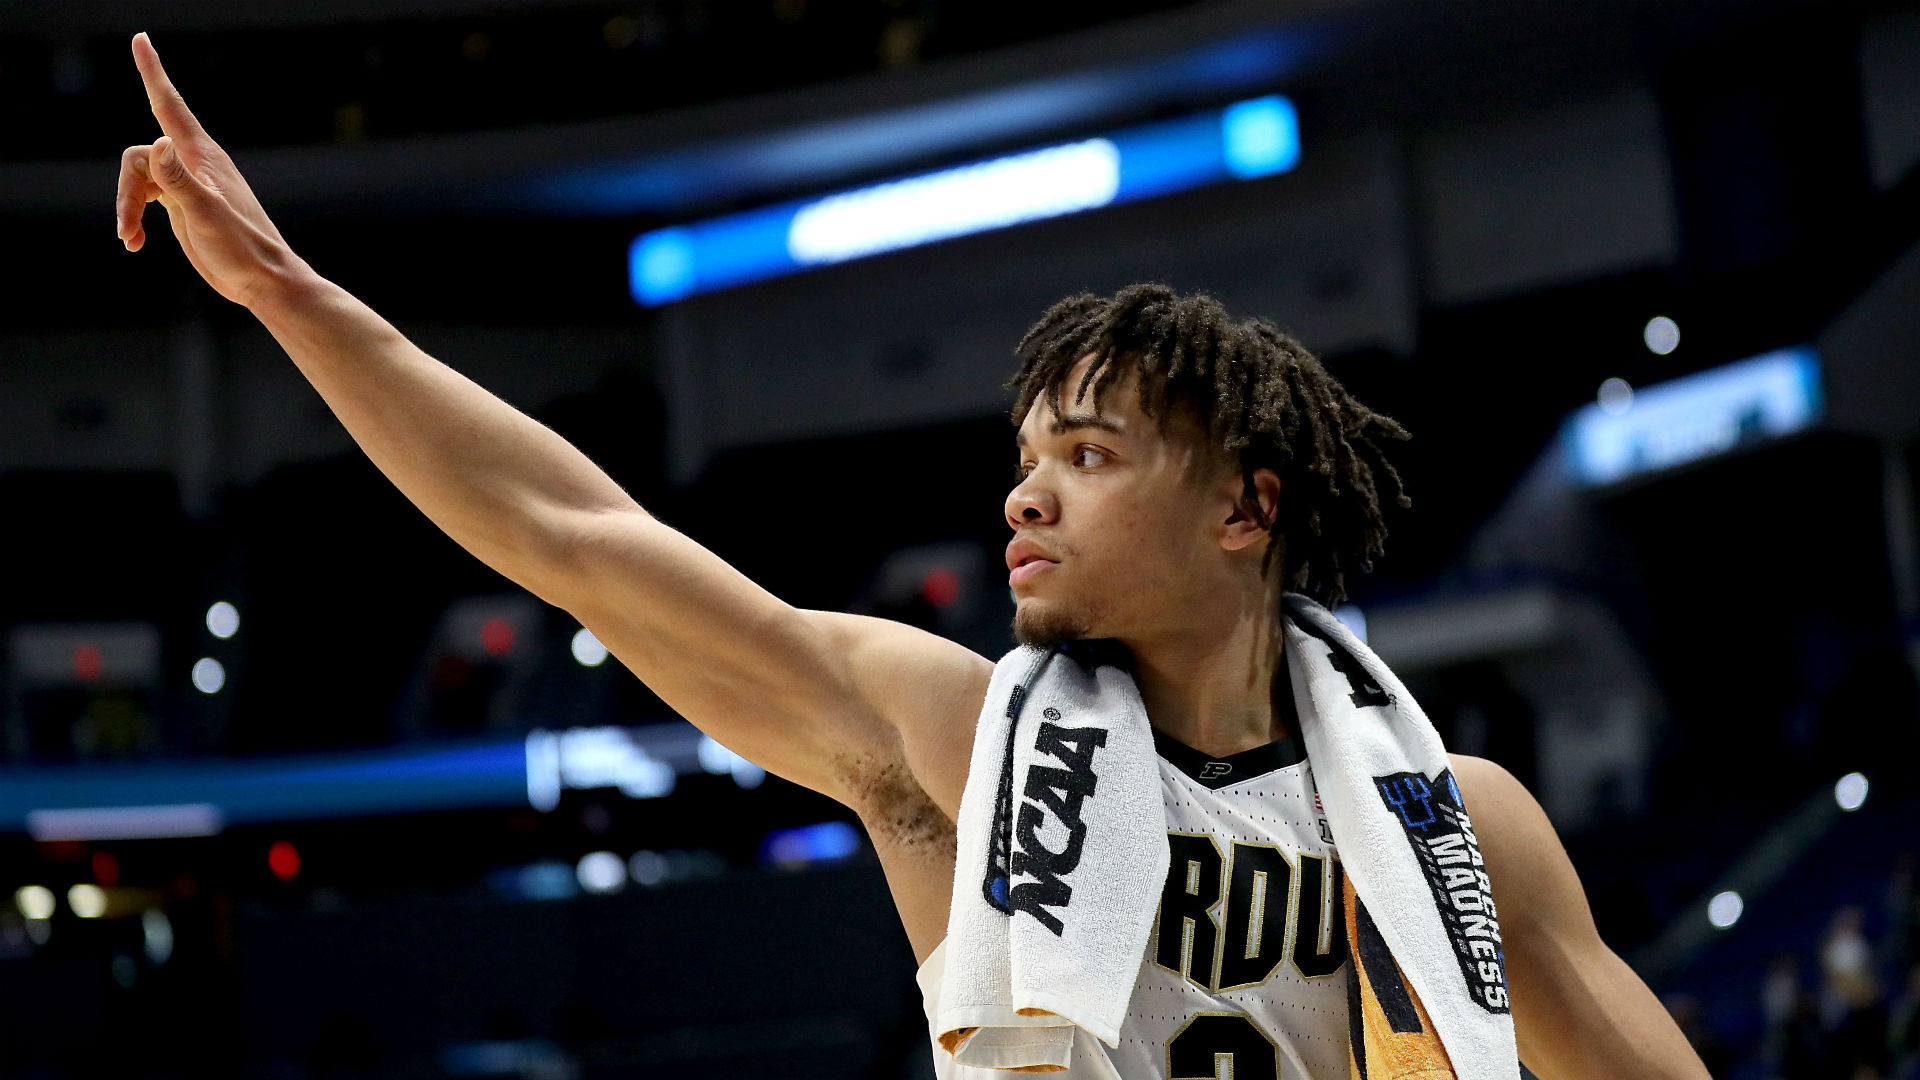 March Madness 2019: Purdue's Carsen Edwards' 28 3-pointers